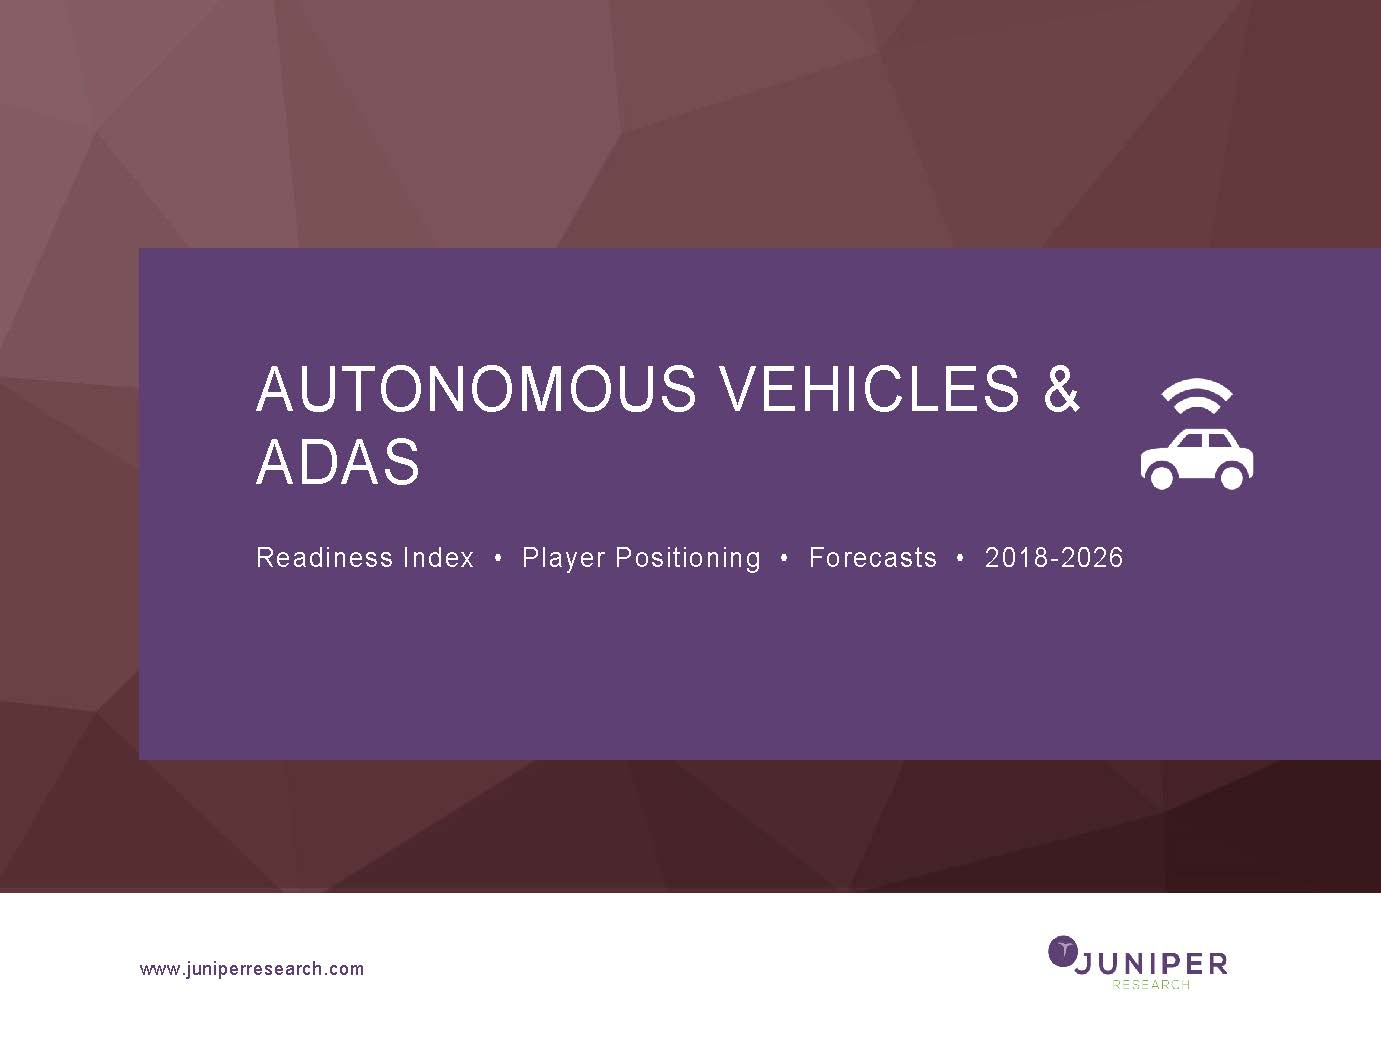 Autonomous Vehicles & ADAS: Readiness Index, Player Positioning & Forecasts 2018-2026